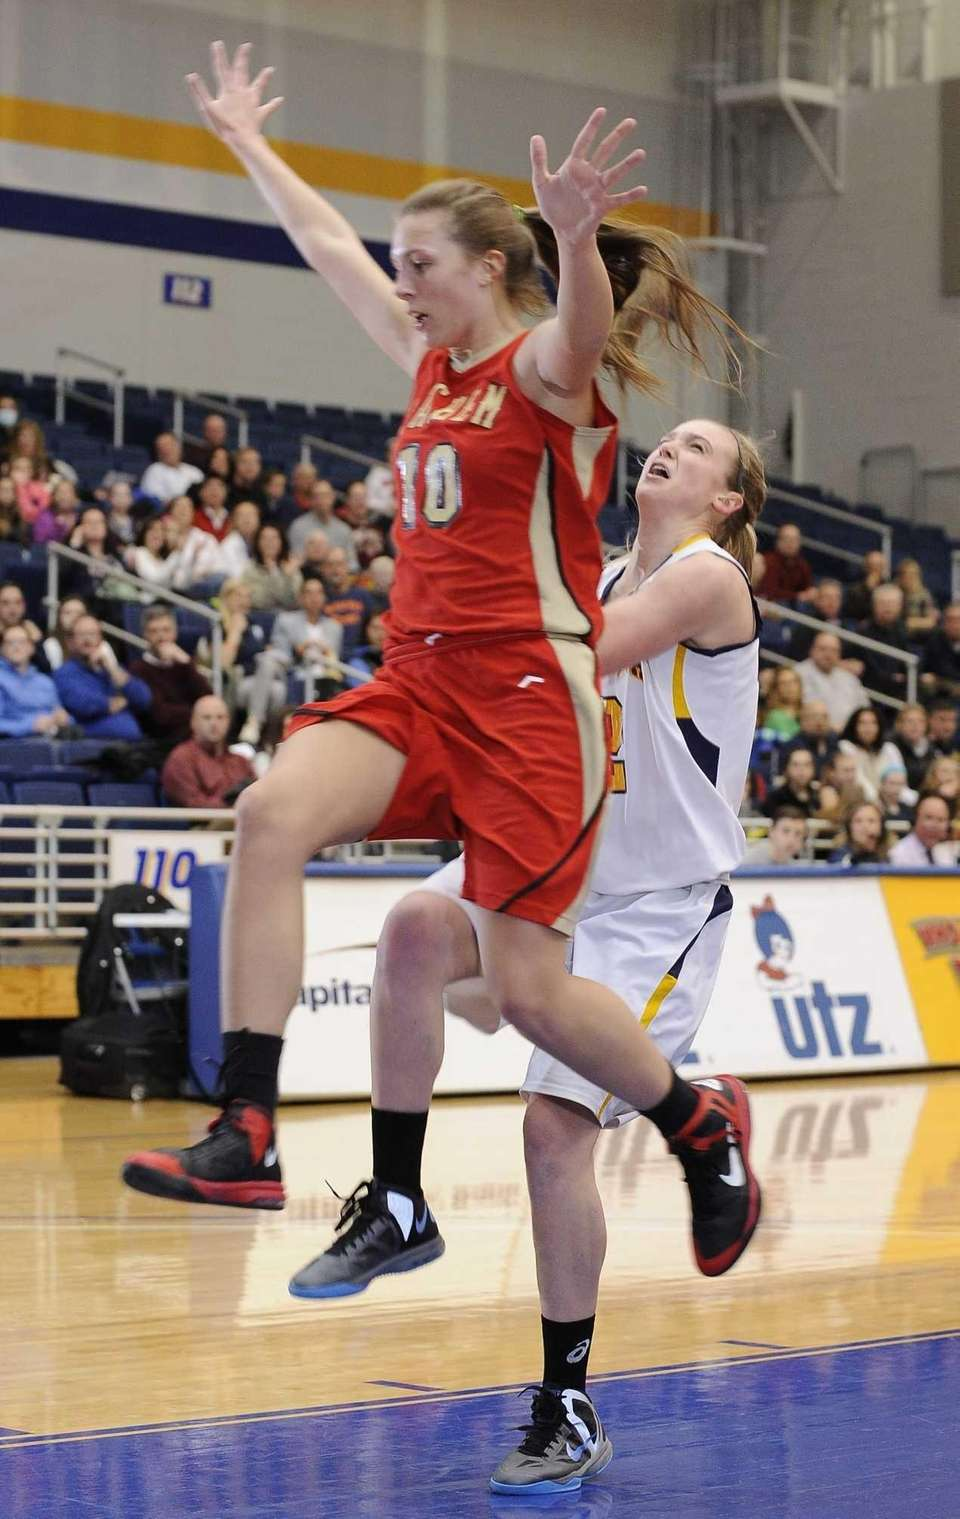 Sachem East's Kathleen Everson defends a layup attempt